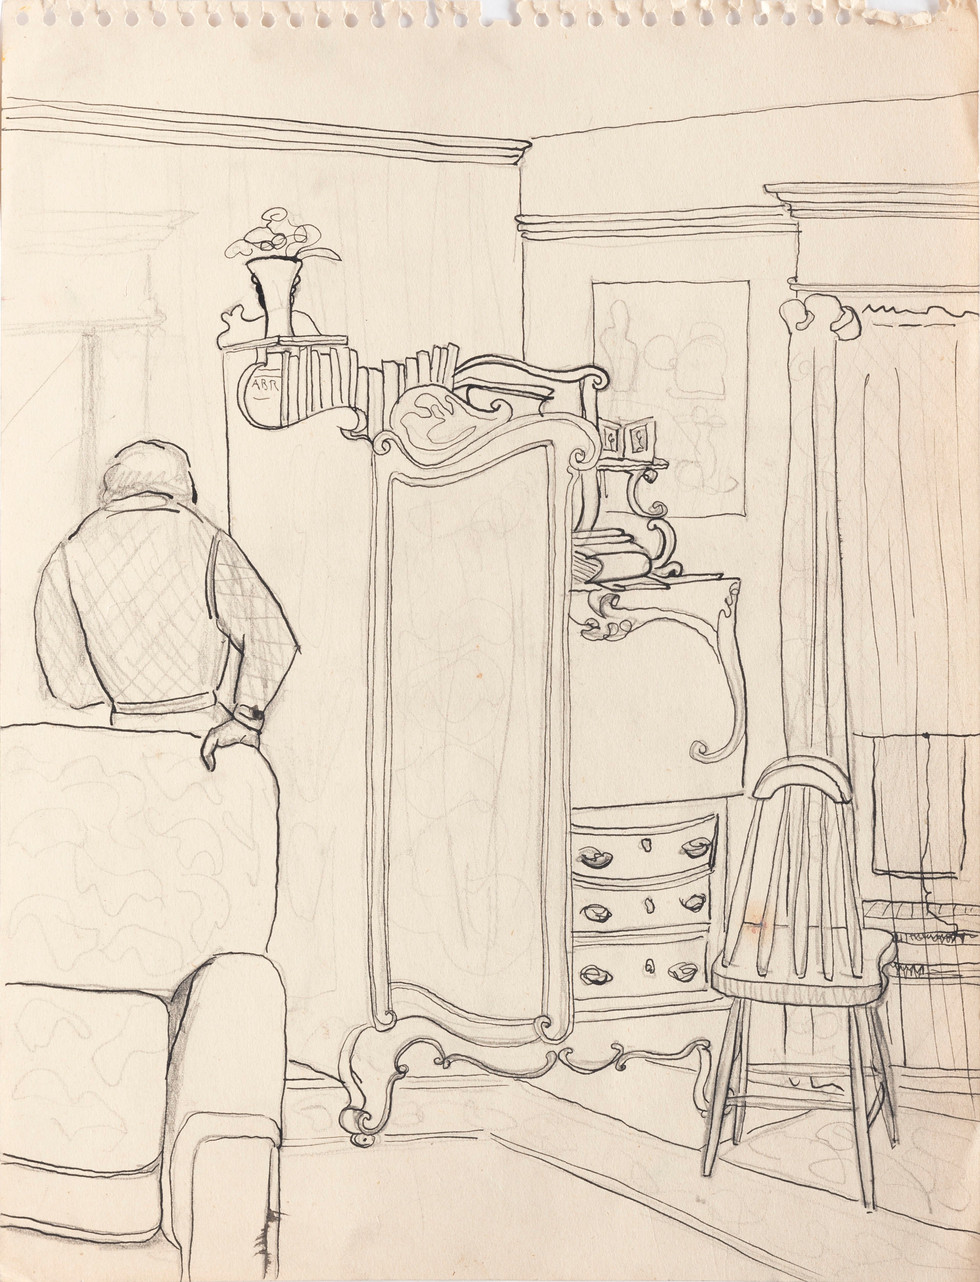 Untitled sketch - man leaning on a couch in domestic space with furniture